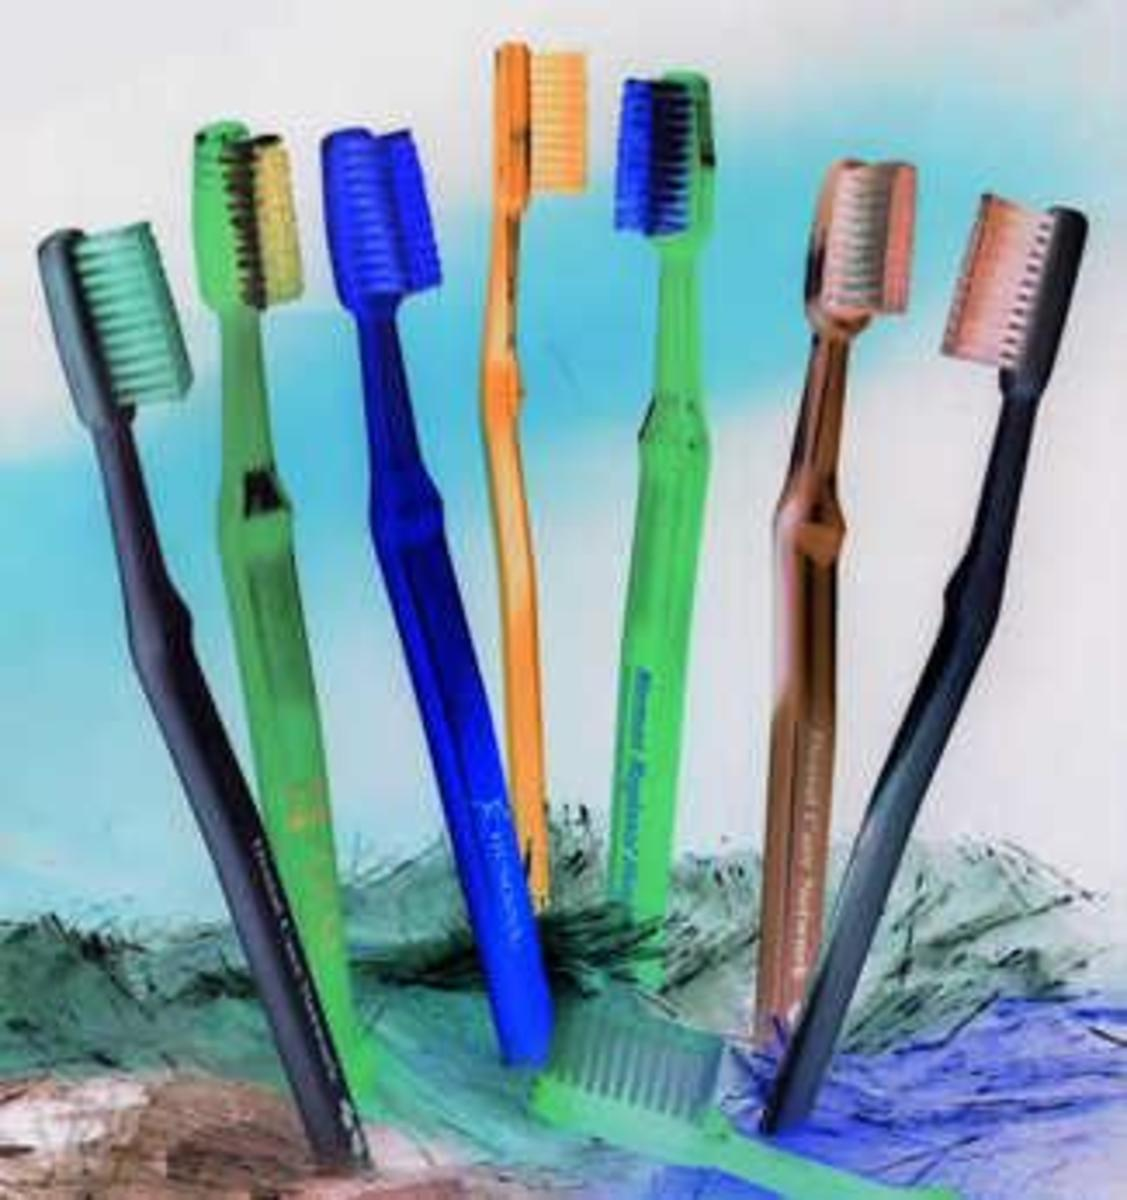 Buy several toothbrushes for each member of the family to store.